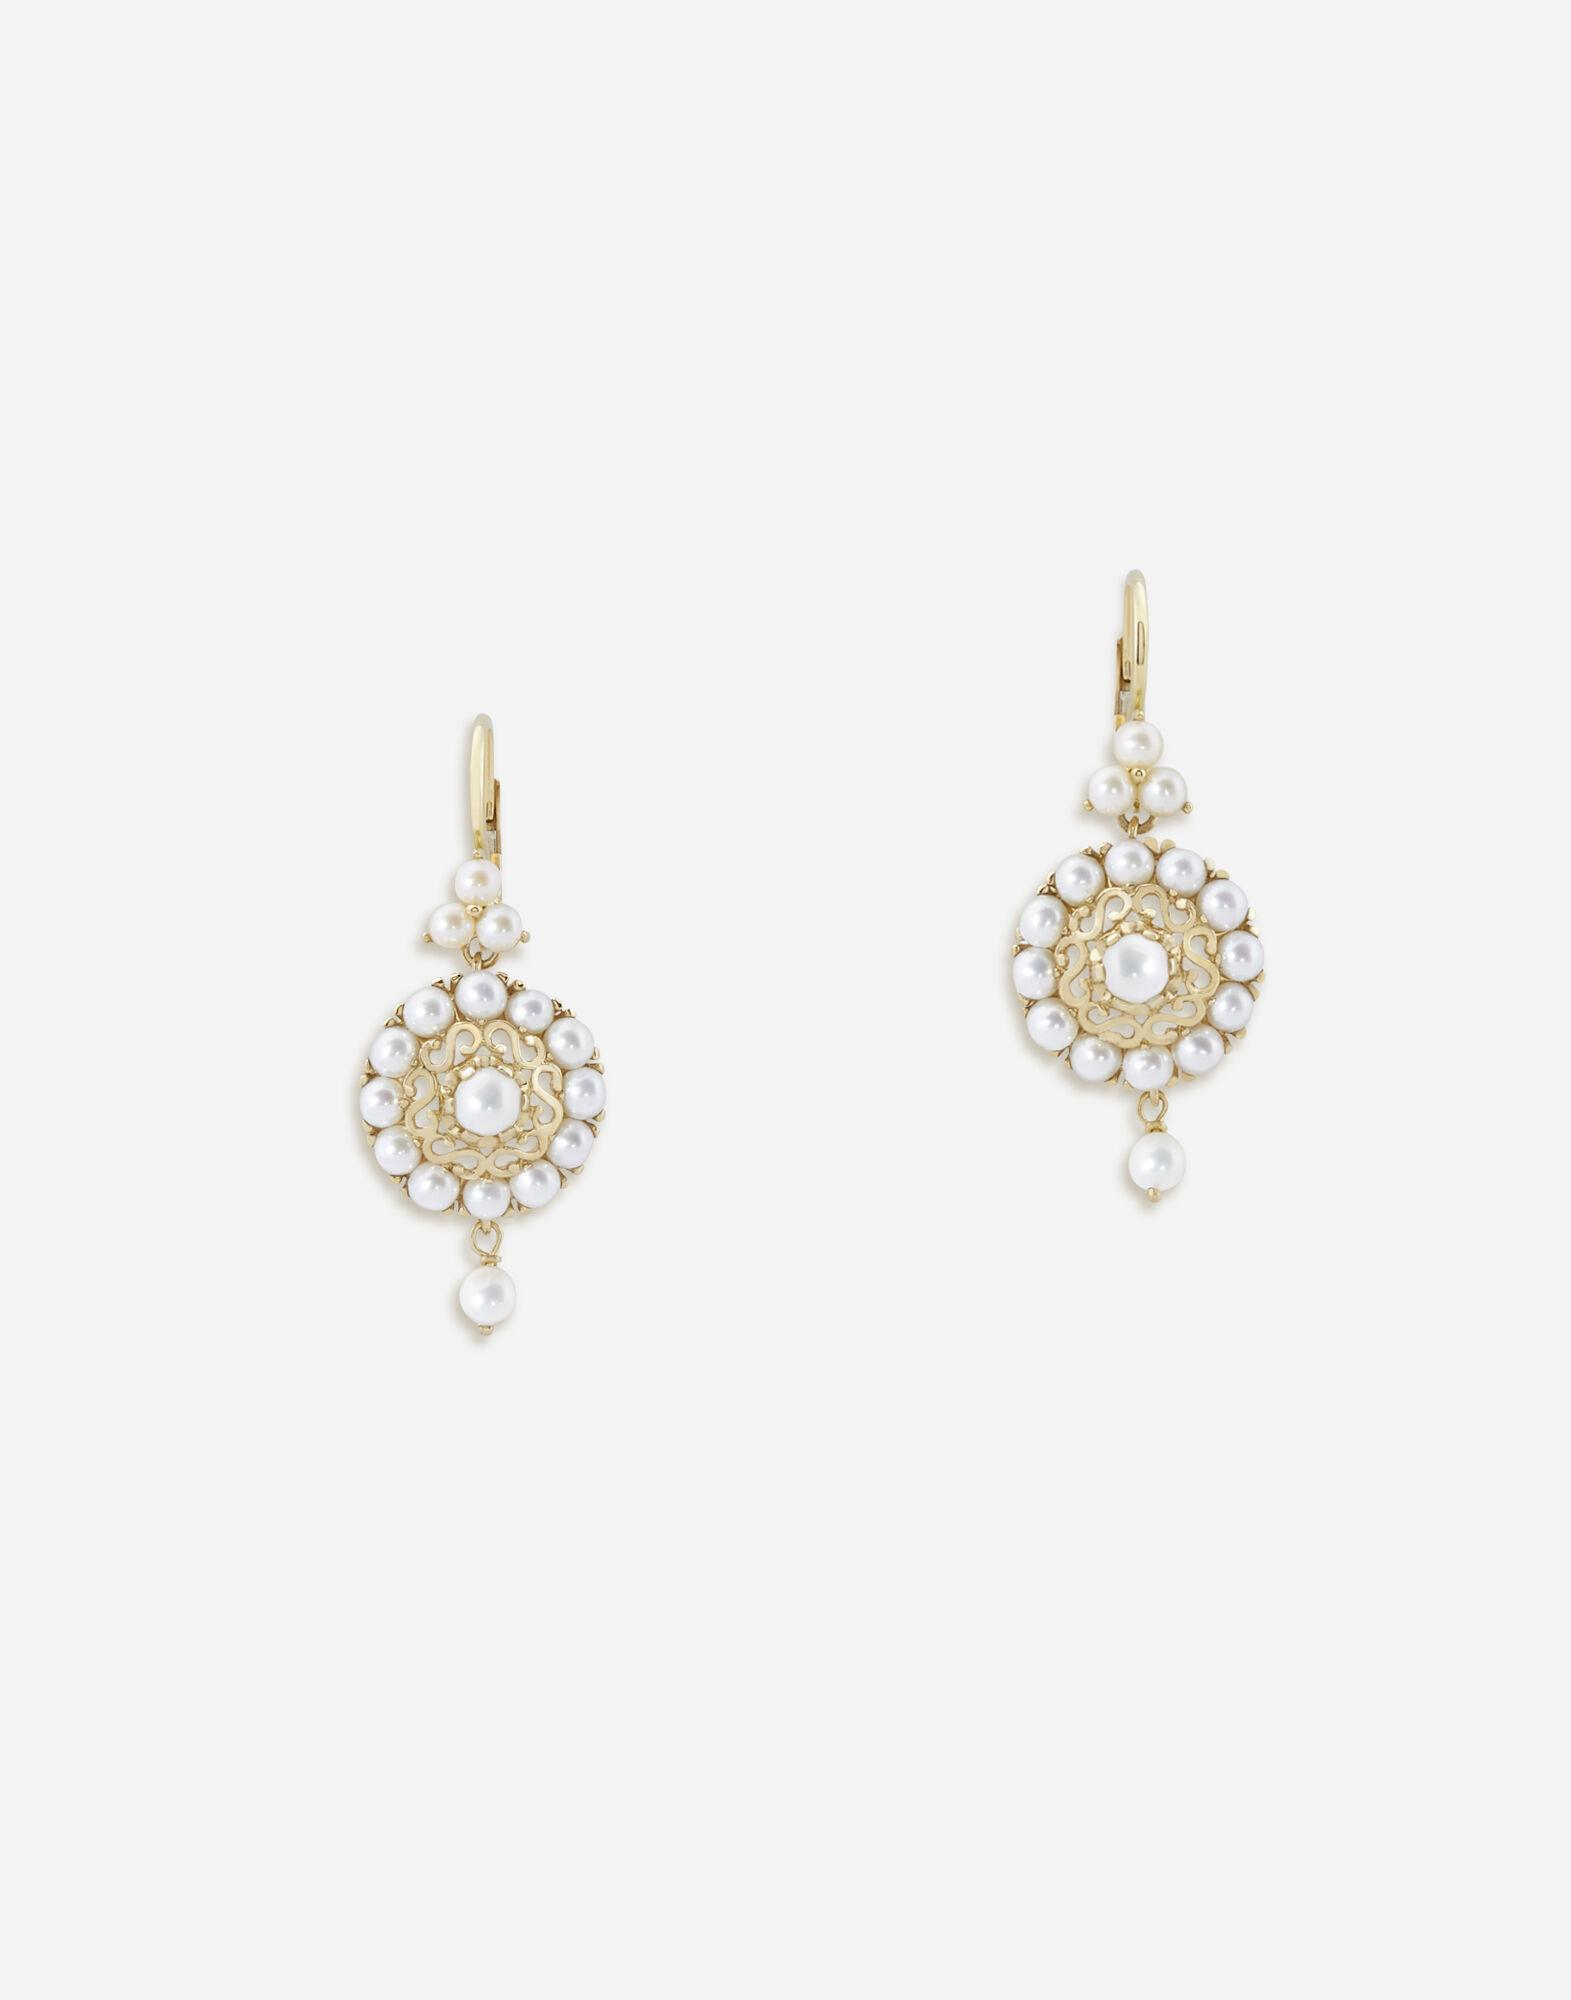 Romance earrings in yellow gold with pearls